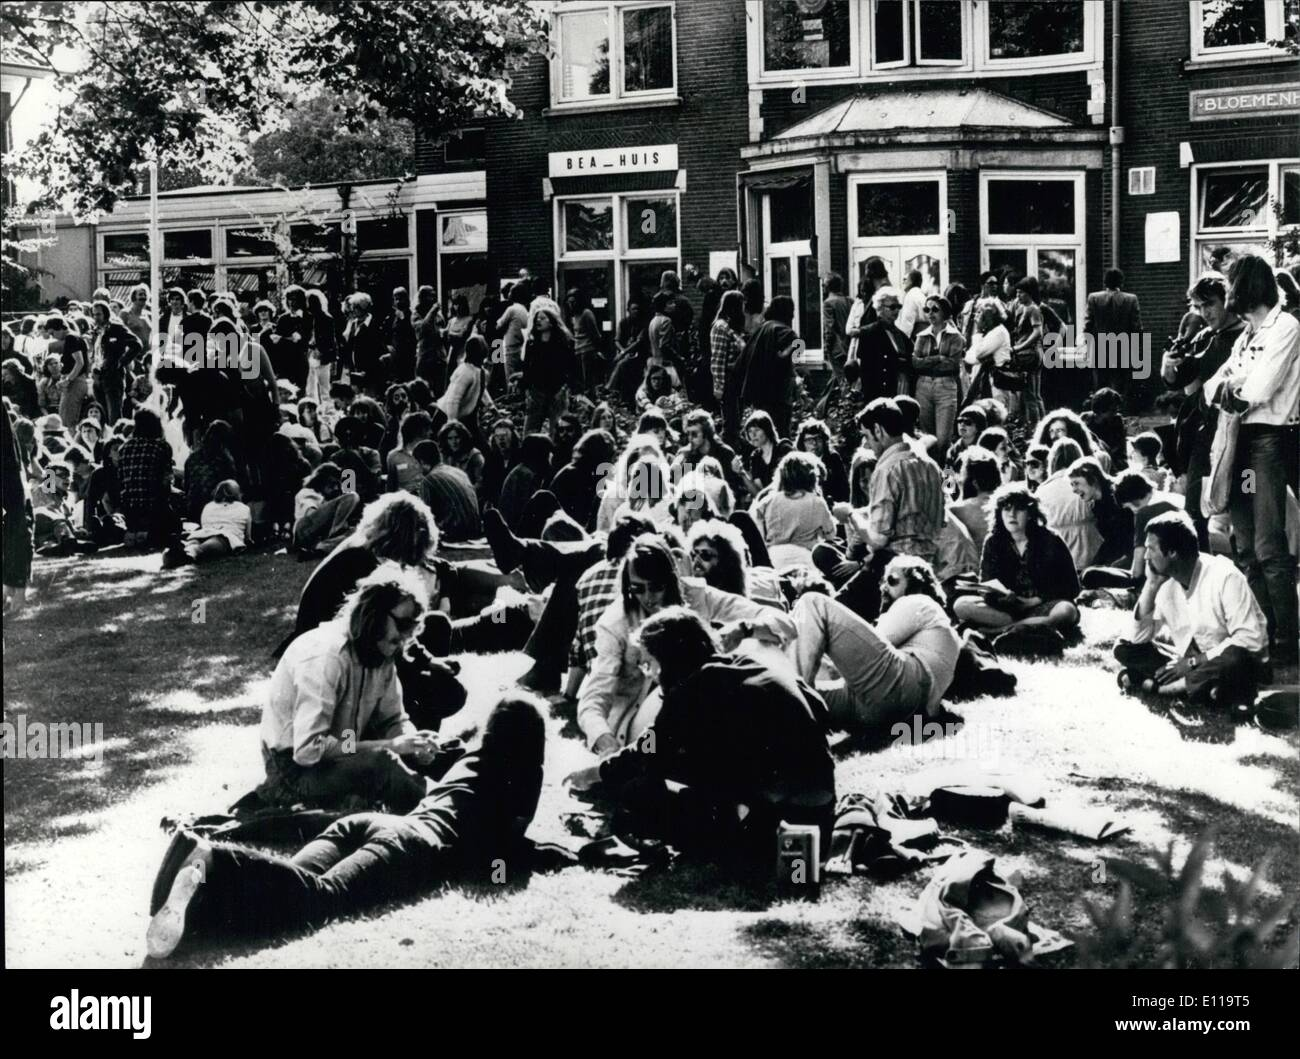 May 05, 1976 - Tension Grows Over The Closure Order Of The Only Dutch Abortion Clinic By The Dutch Minister Of Justice: The Dutch Minister of Justice has ordered the closure of the only abortion clinic at Heemstede, near Haarlem. The Dutch Parliament and a great number of ministers oppose the closure and are introducing a new bill to legalise abortion, which at the moment is forbidden by law. Photo shows Hundreds of Dutch people sit on the lawns of the abortion clinic at Heemstede as a protest against the closure order. - Stock Image